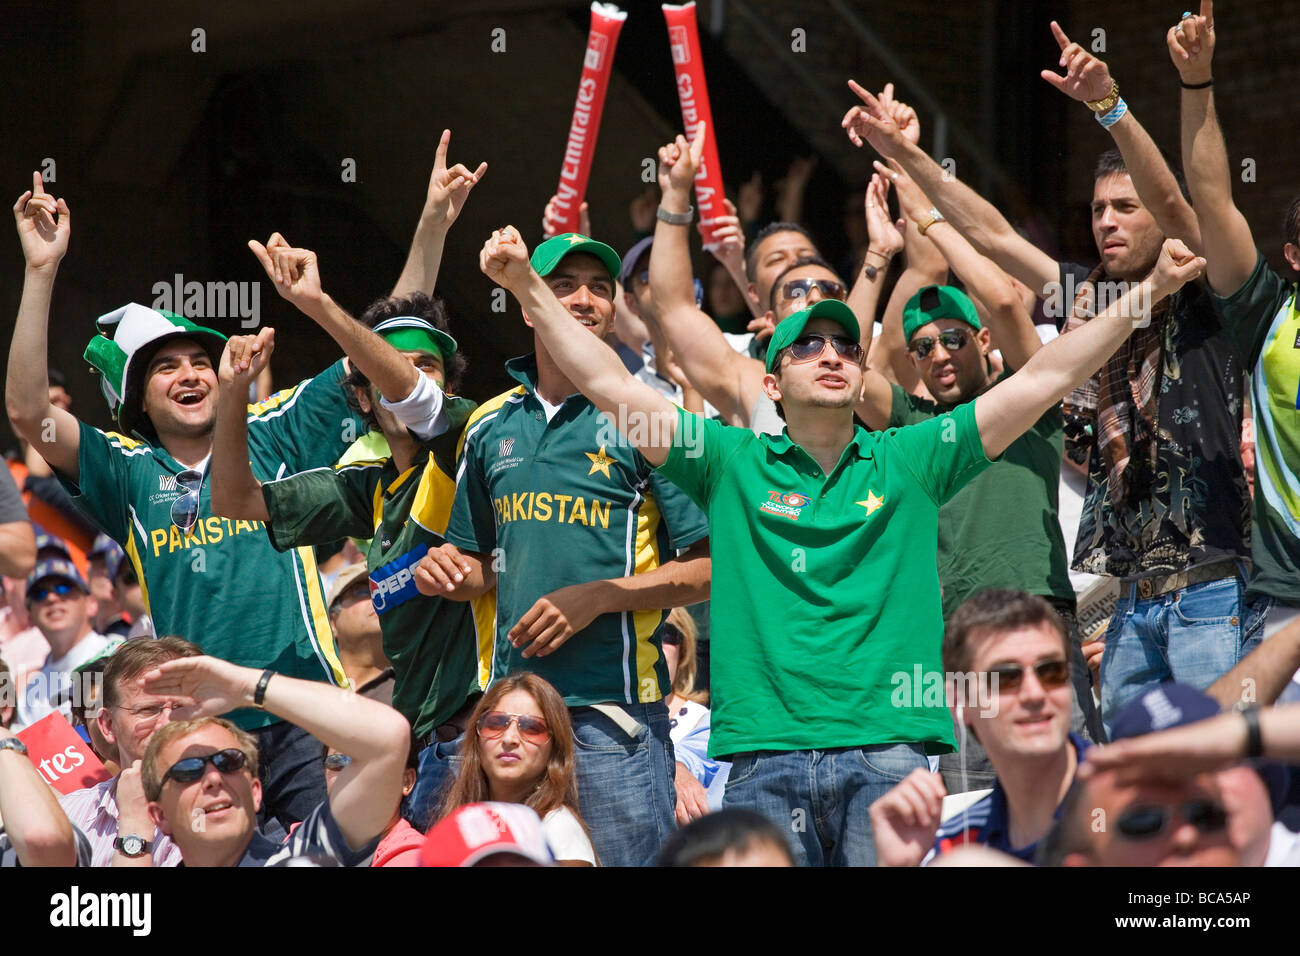 Pakistan cricket fans - Stock Image